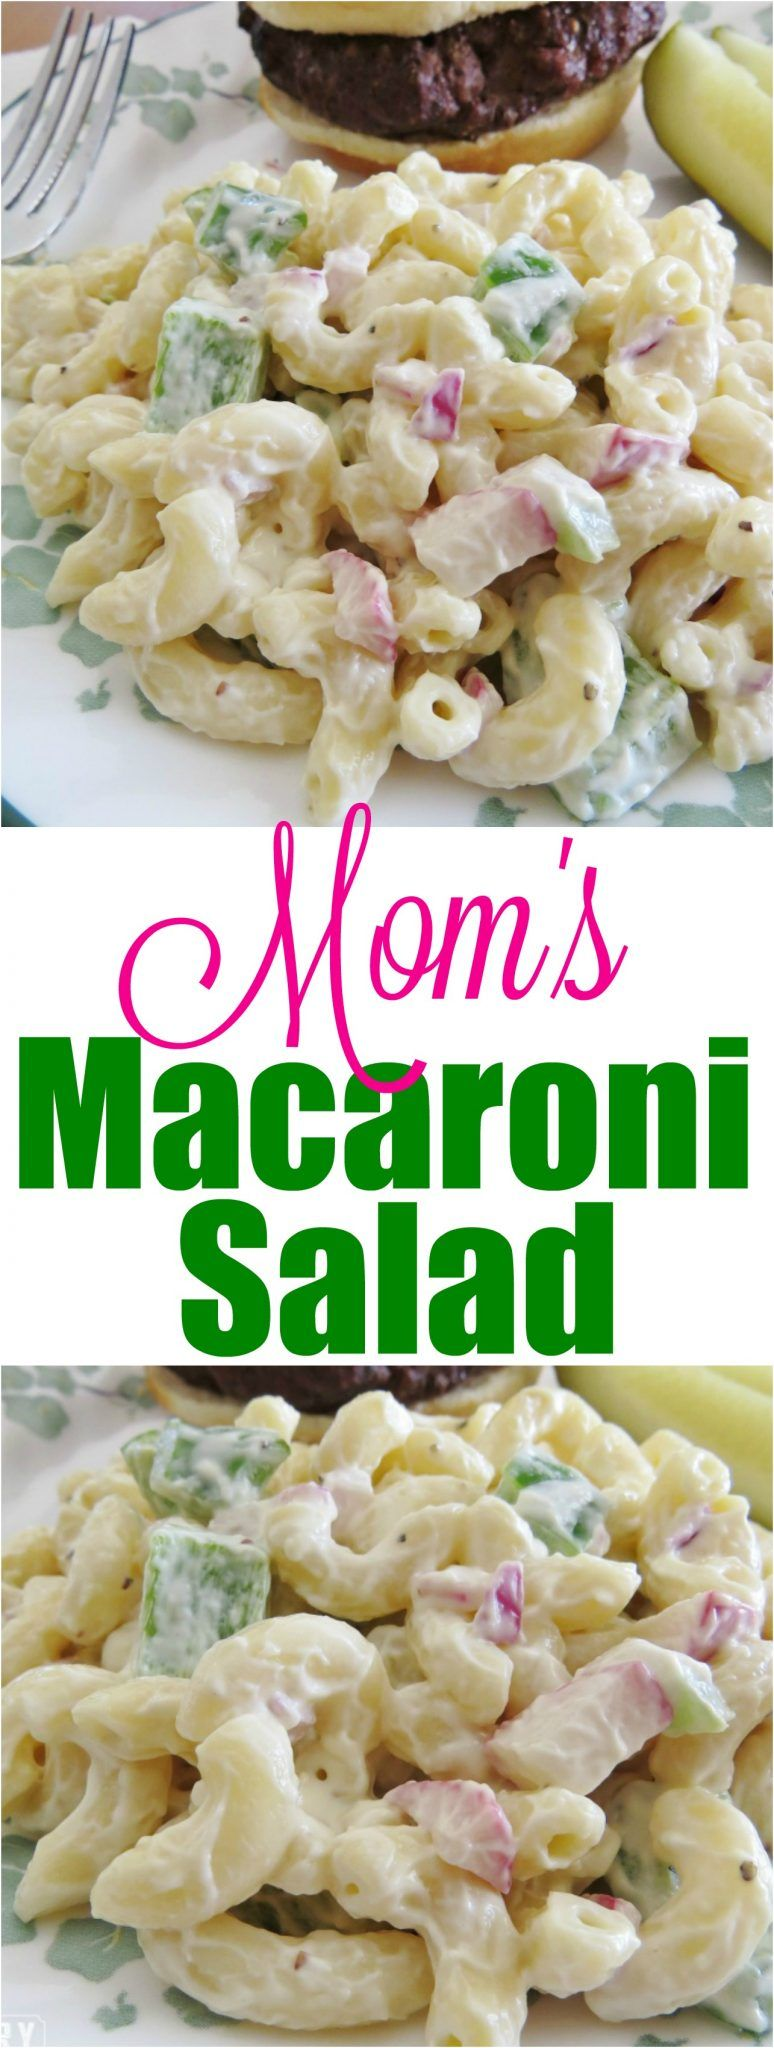 Mom's Macaroni Salad recipe from The Country Cook -   22 macaroni salad recipes ideas